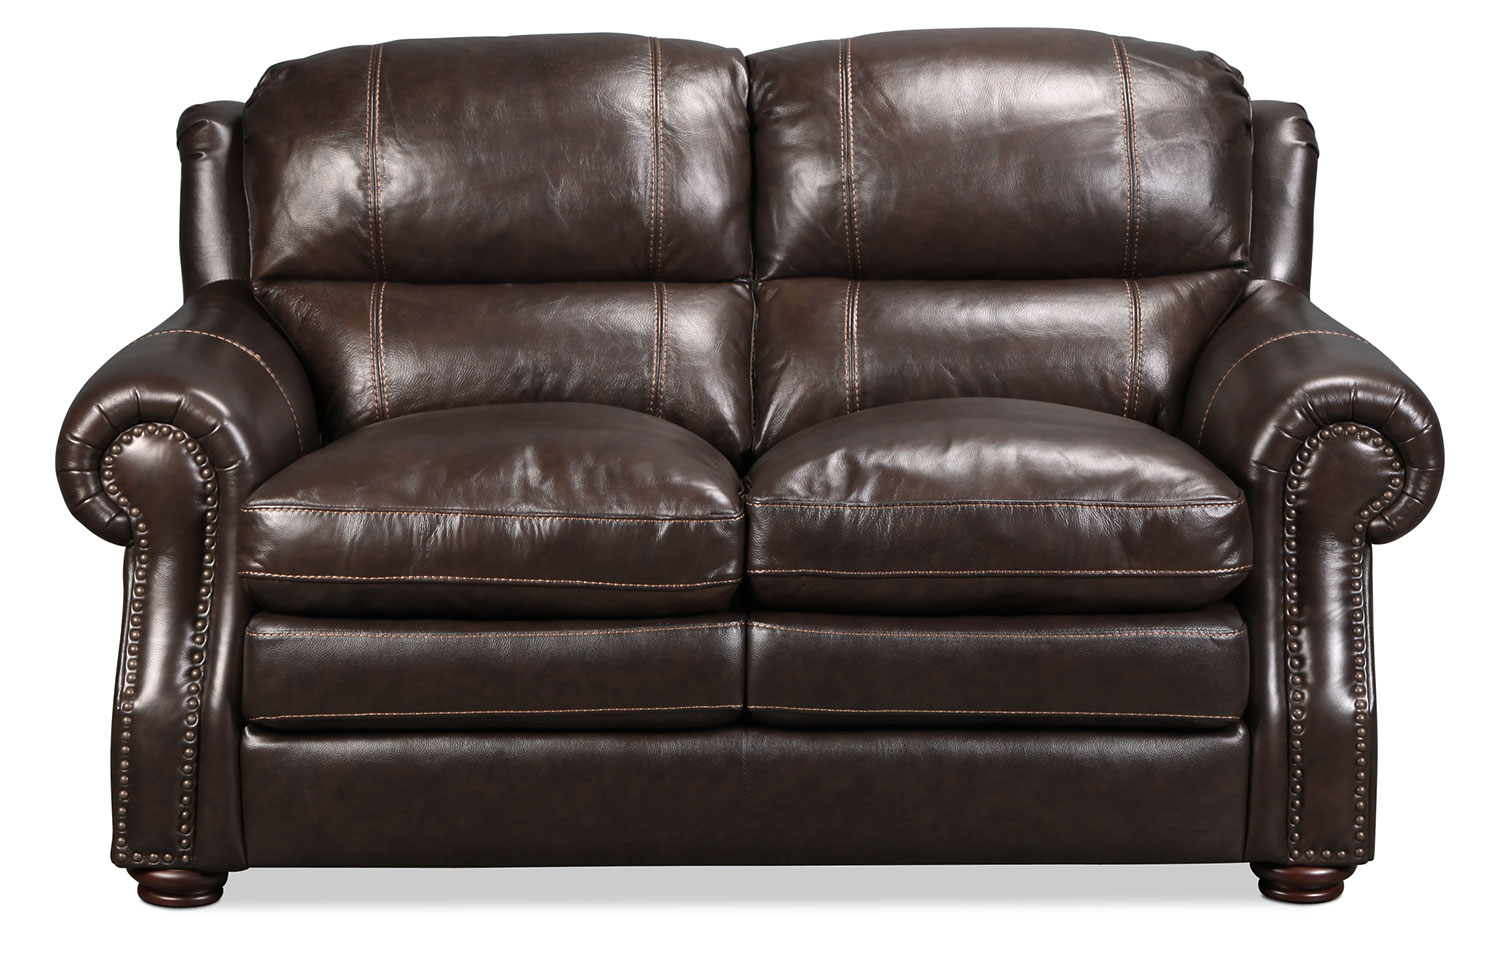 Taft Loveseat - Brown